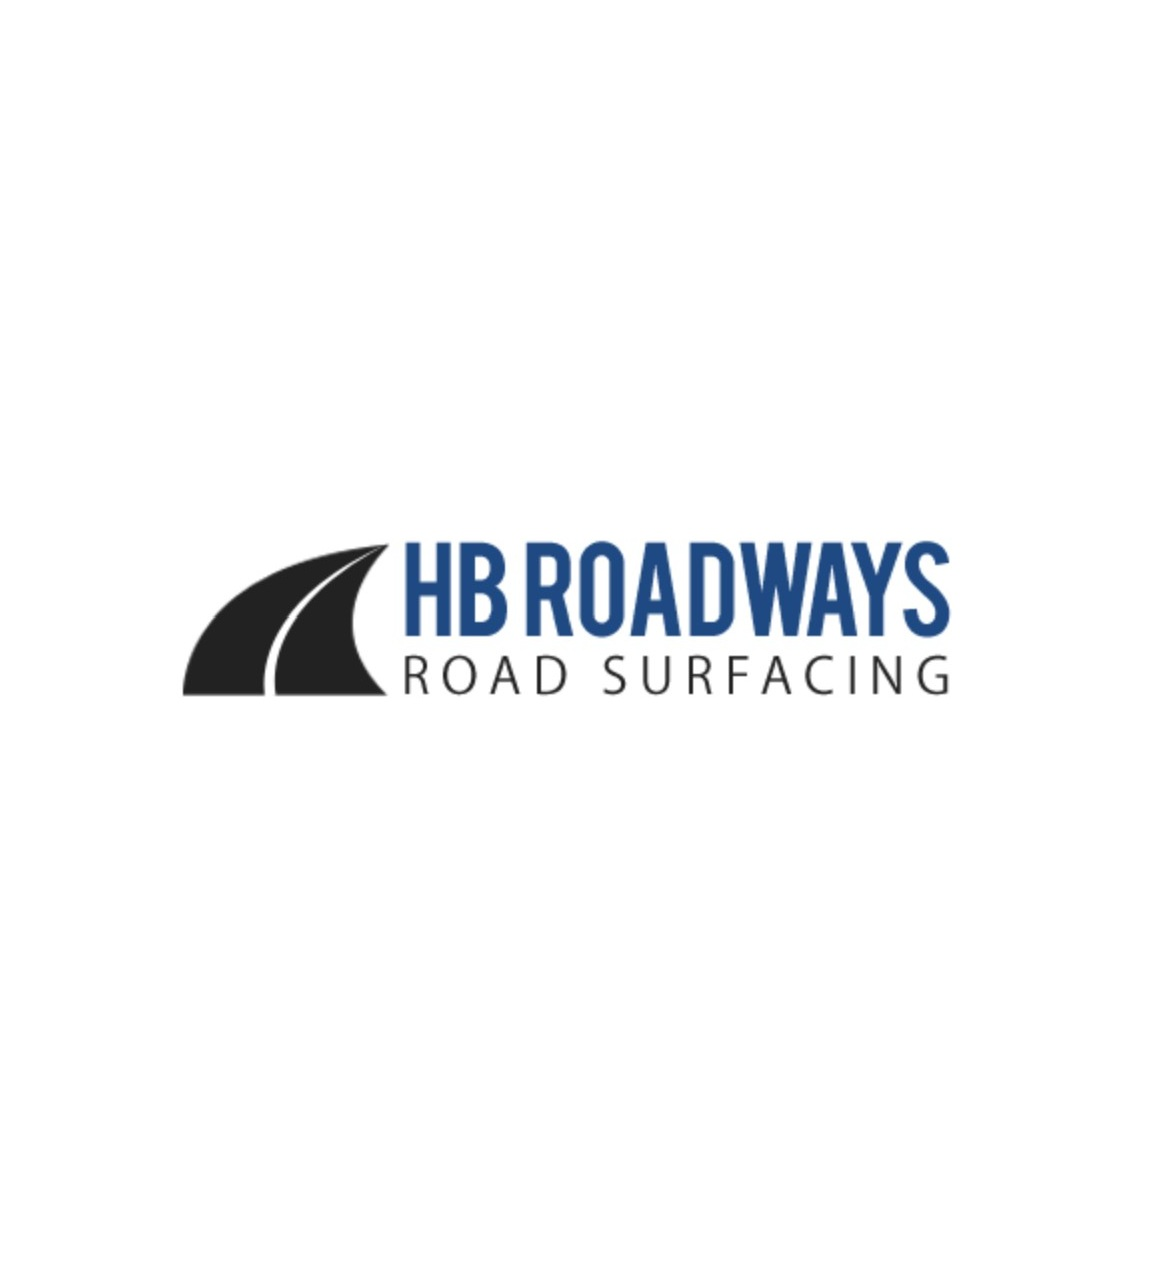 HB Roadways